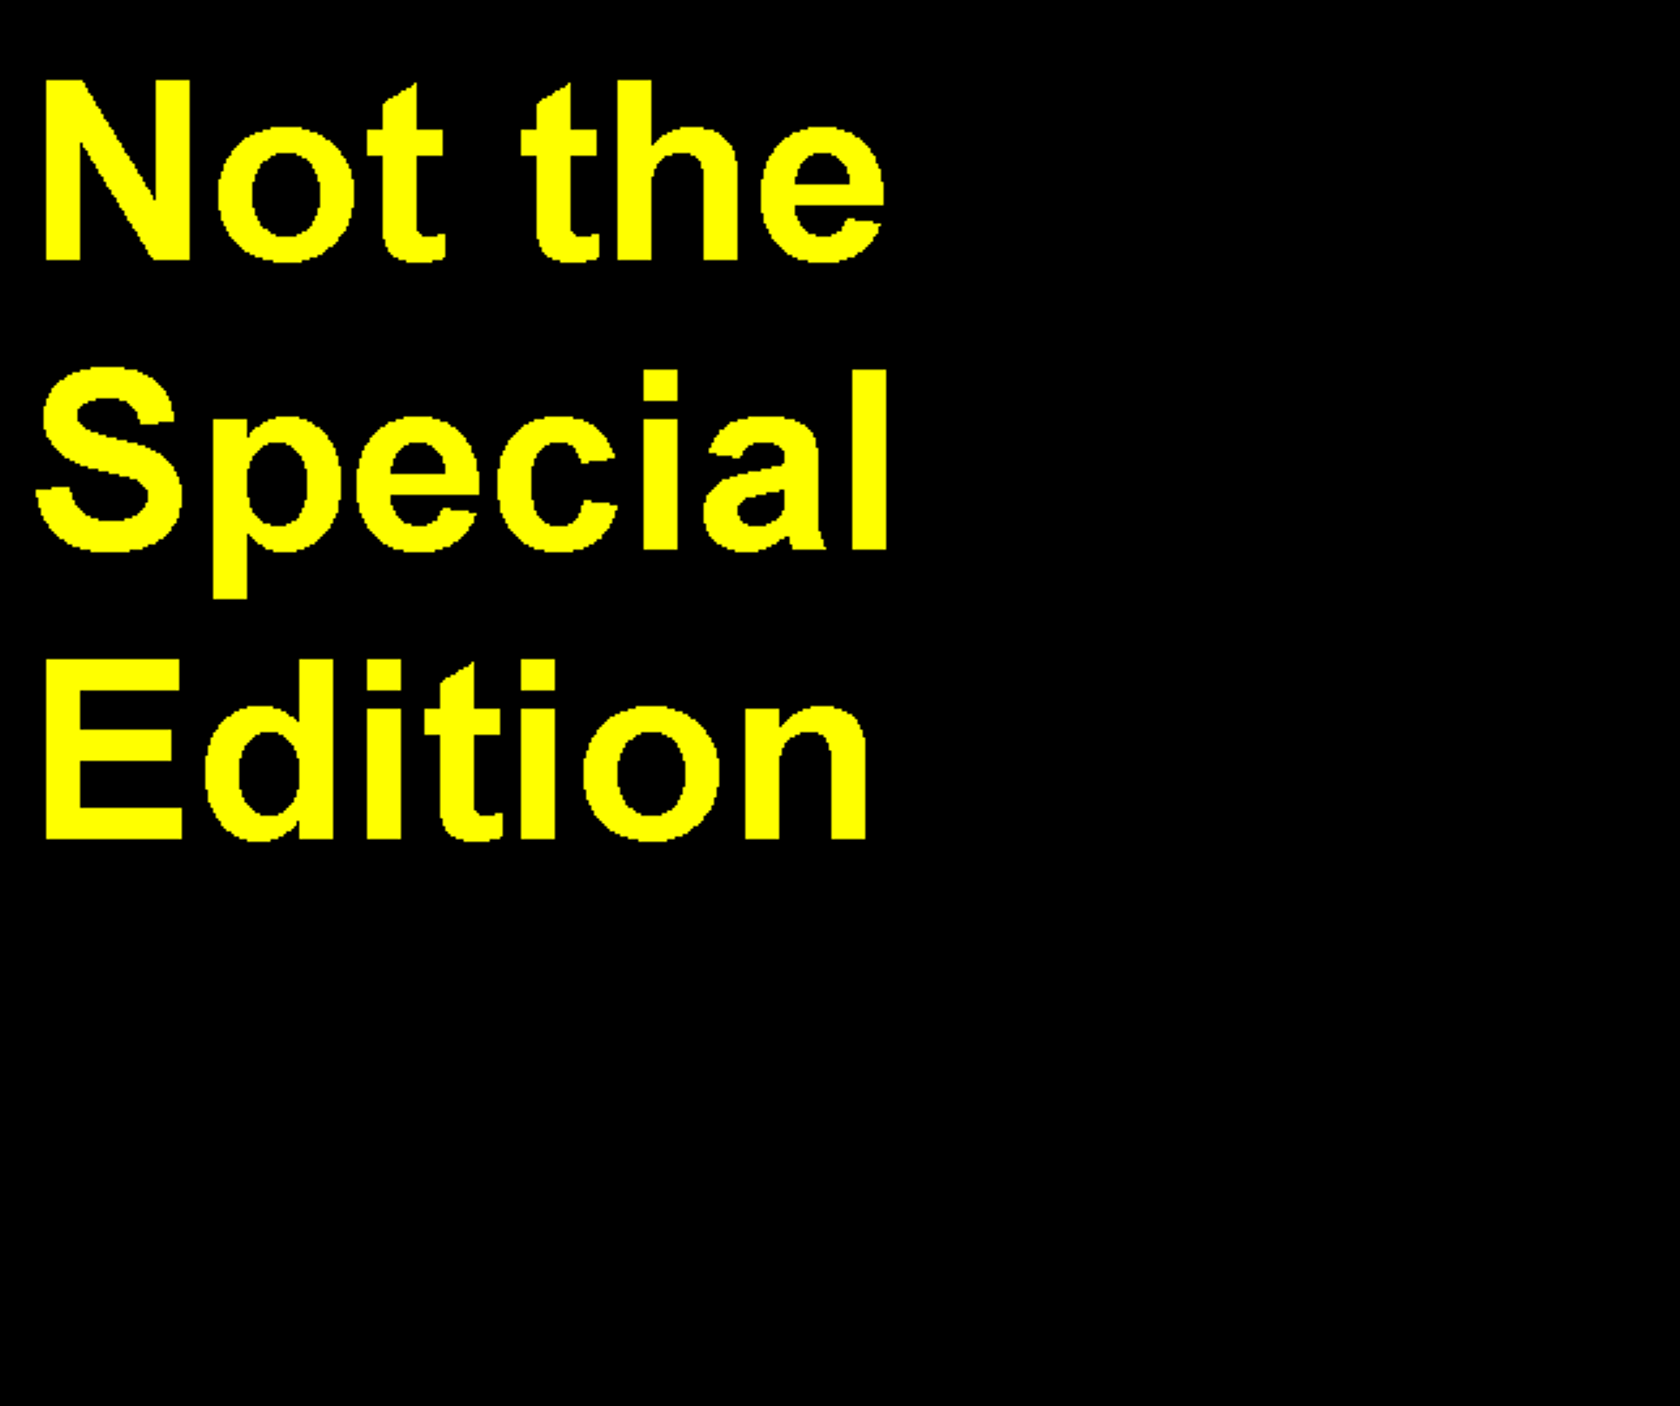 Not the Special Edition